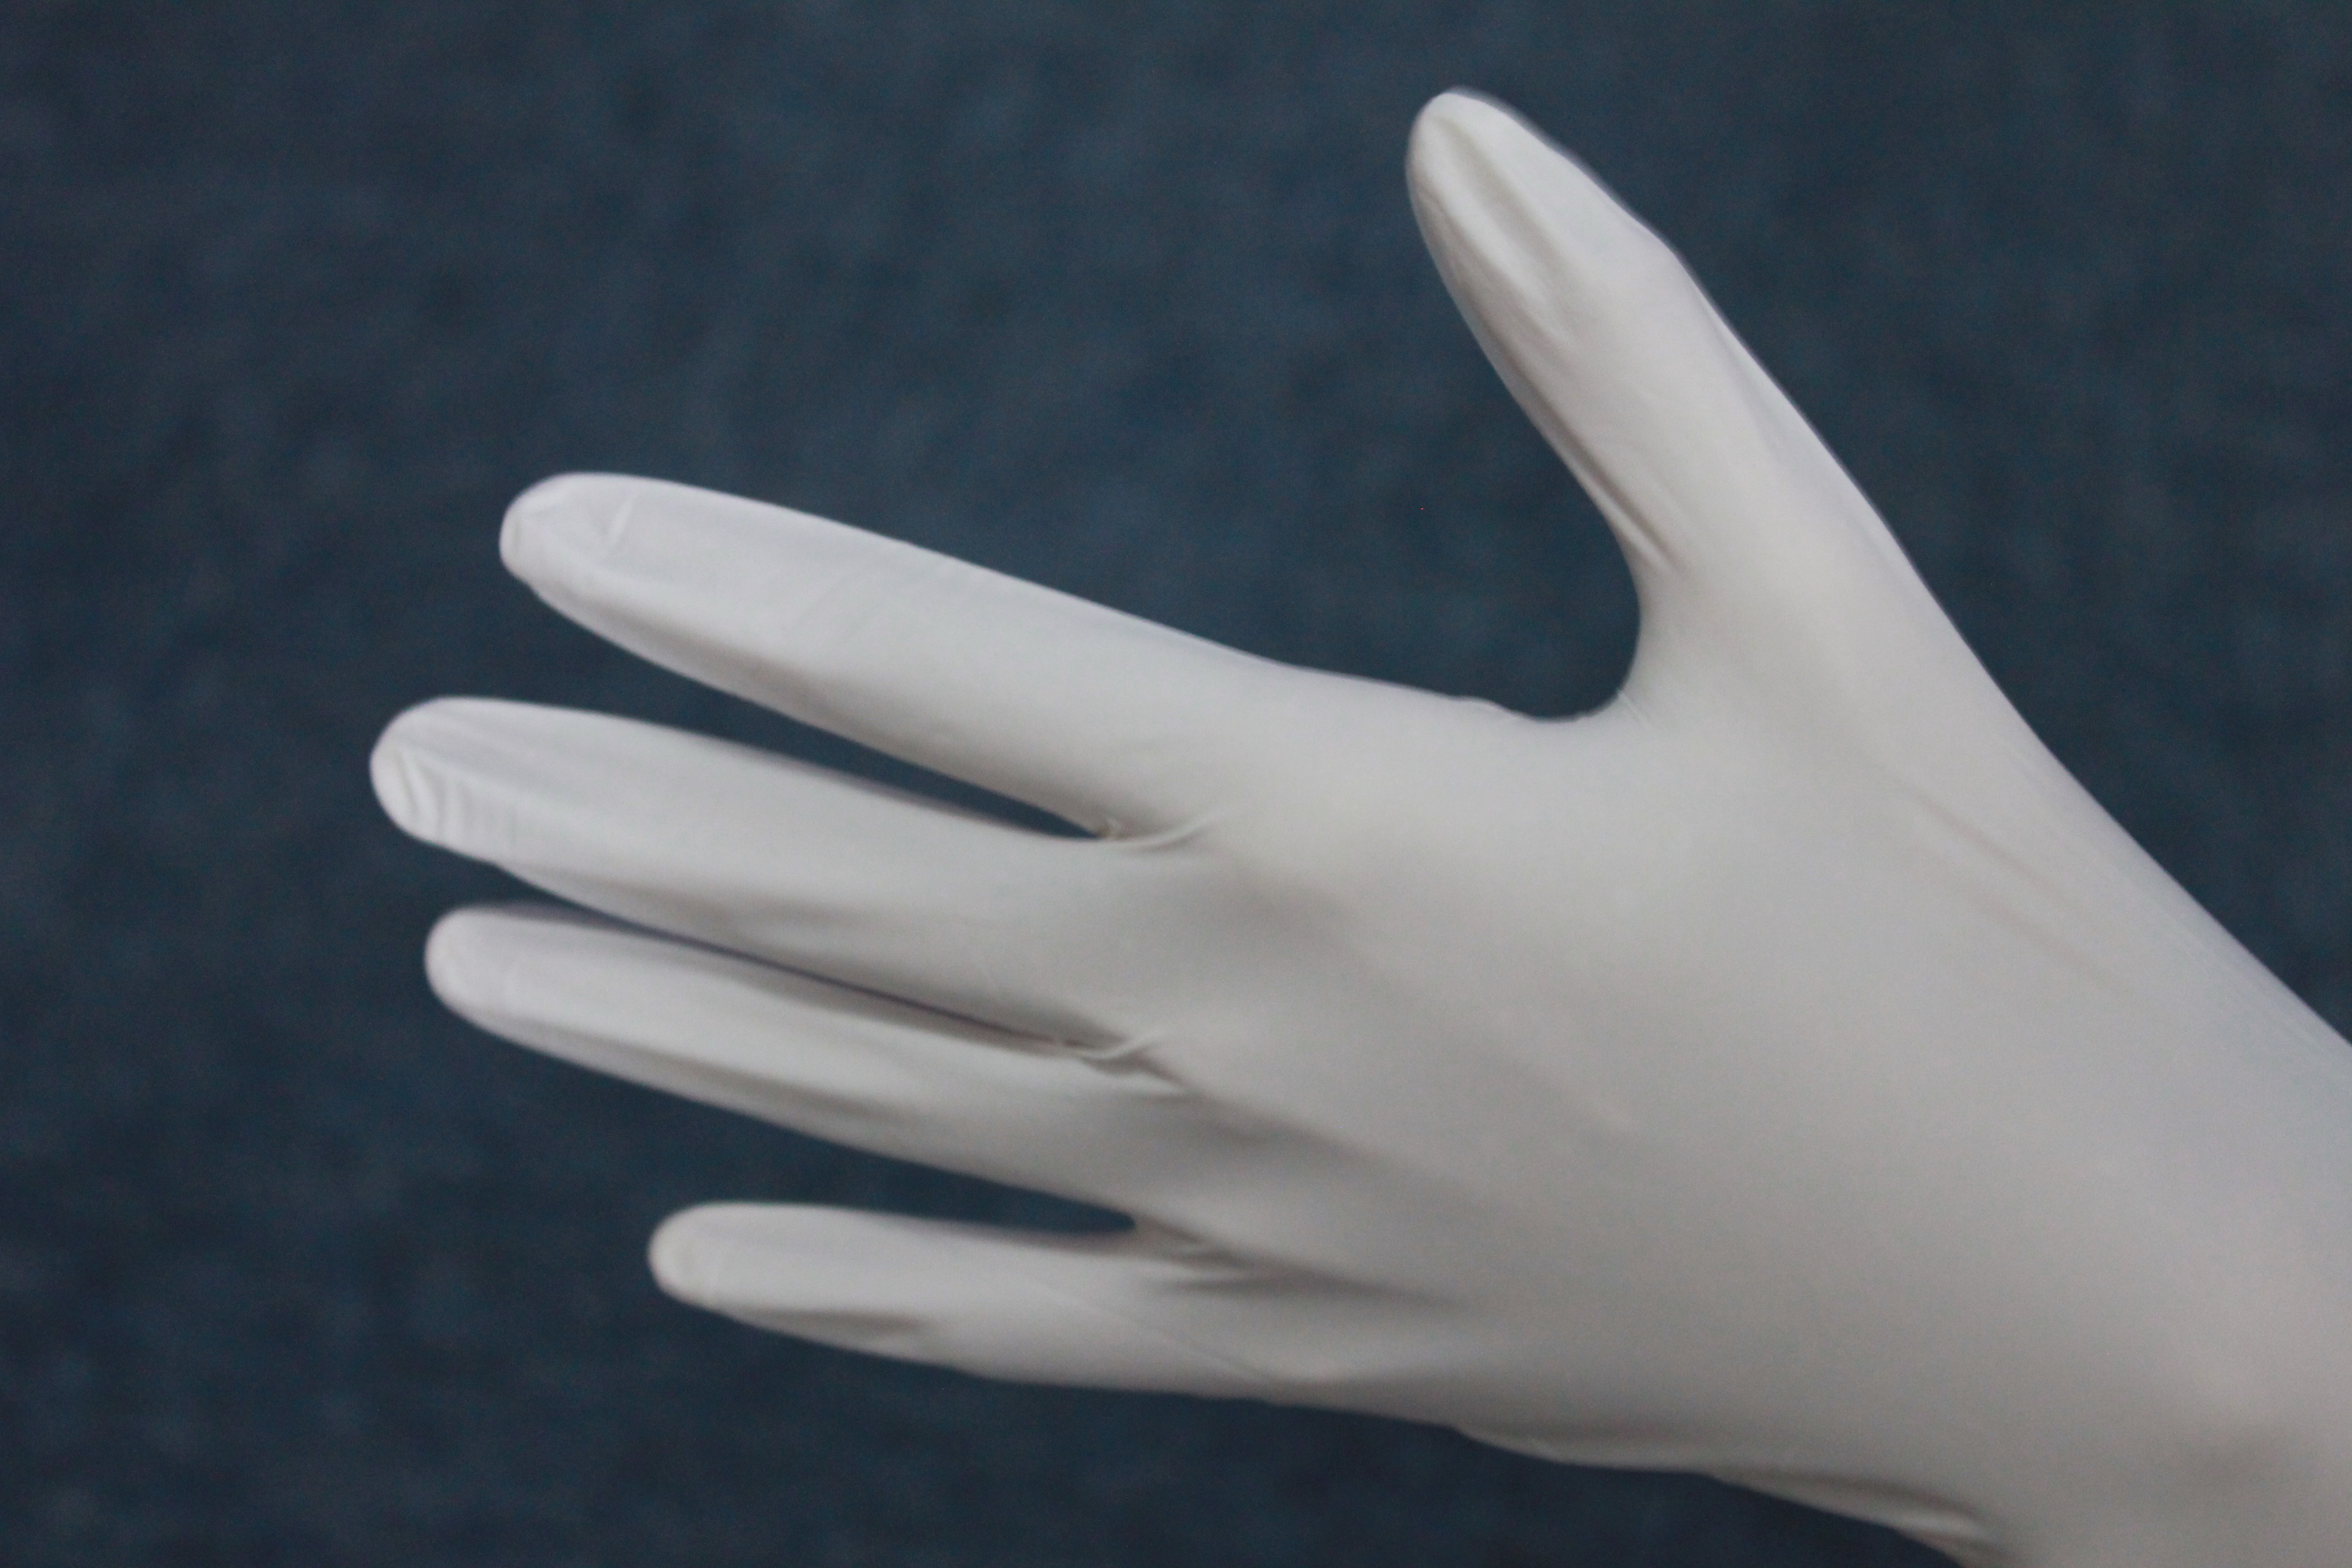 The Latest Top Quality Cheap Price 9 inch Disposable white Nitrile Gloves 100% Powder Free Nitrile Gloves